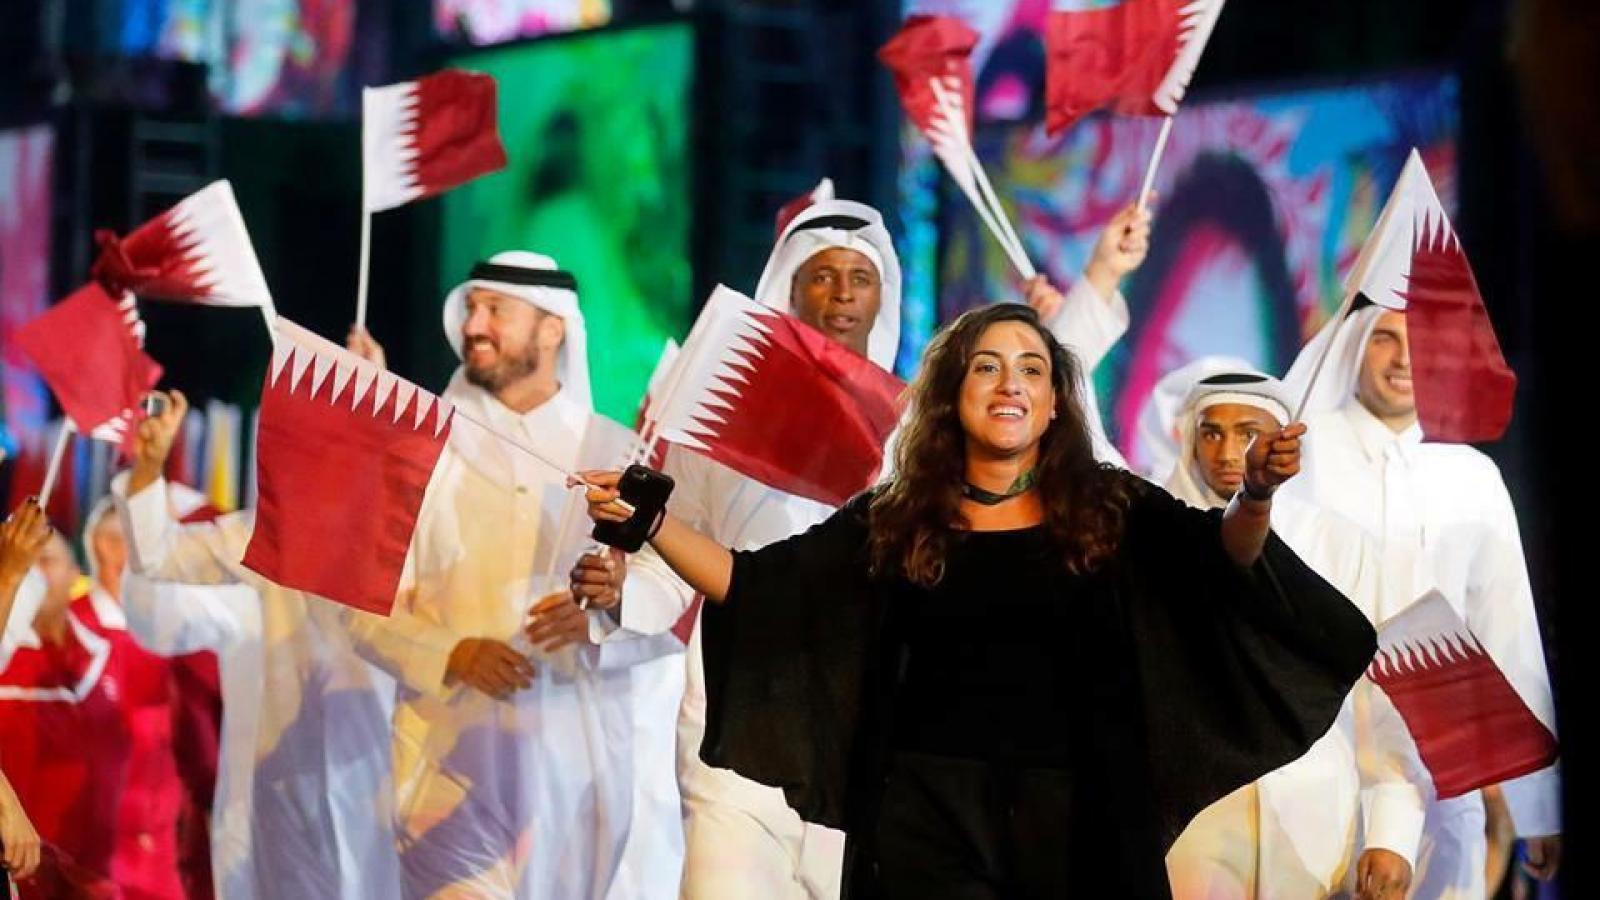 Qatar Foundation to host virtual sports-focused events in celebration of National Sport Day